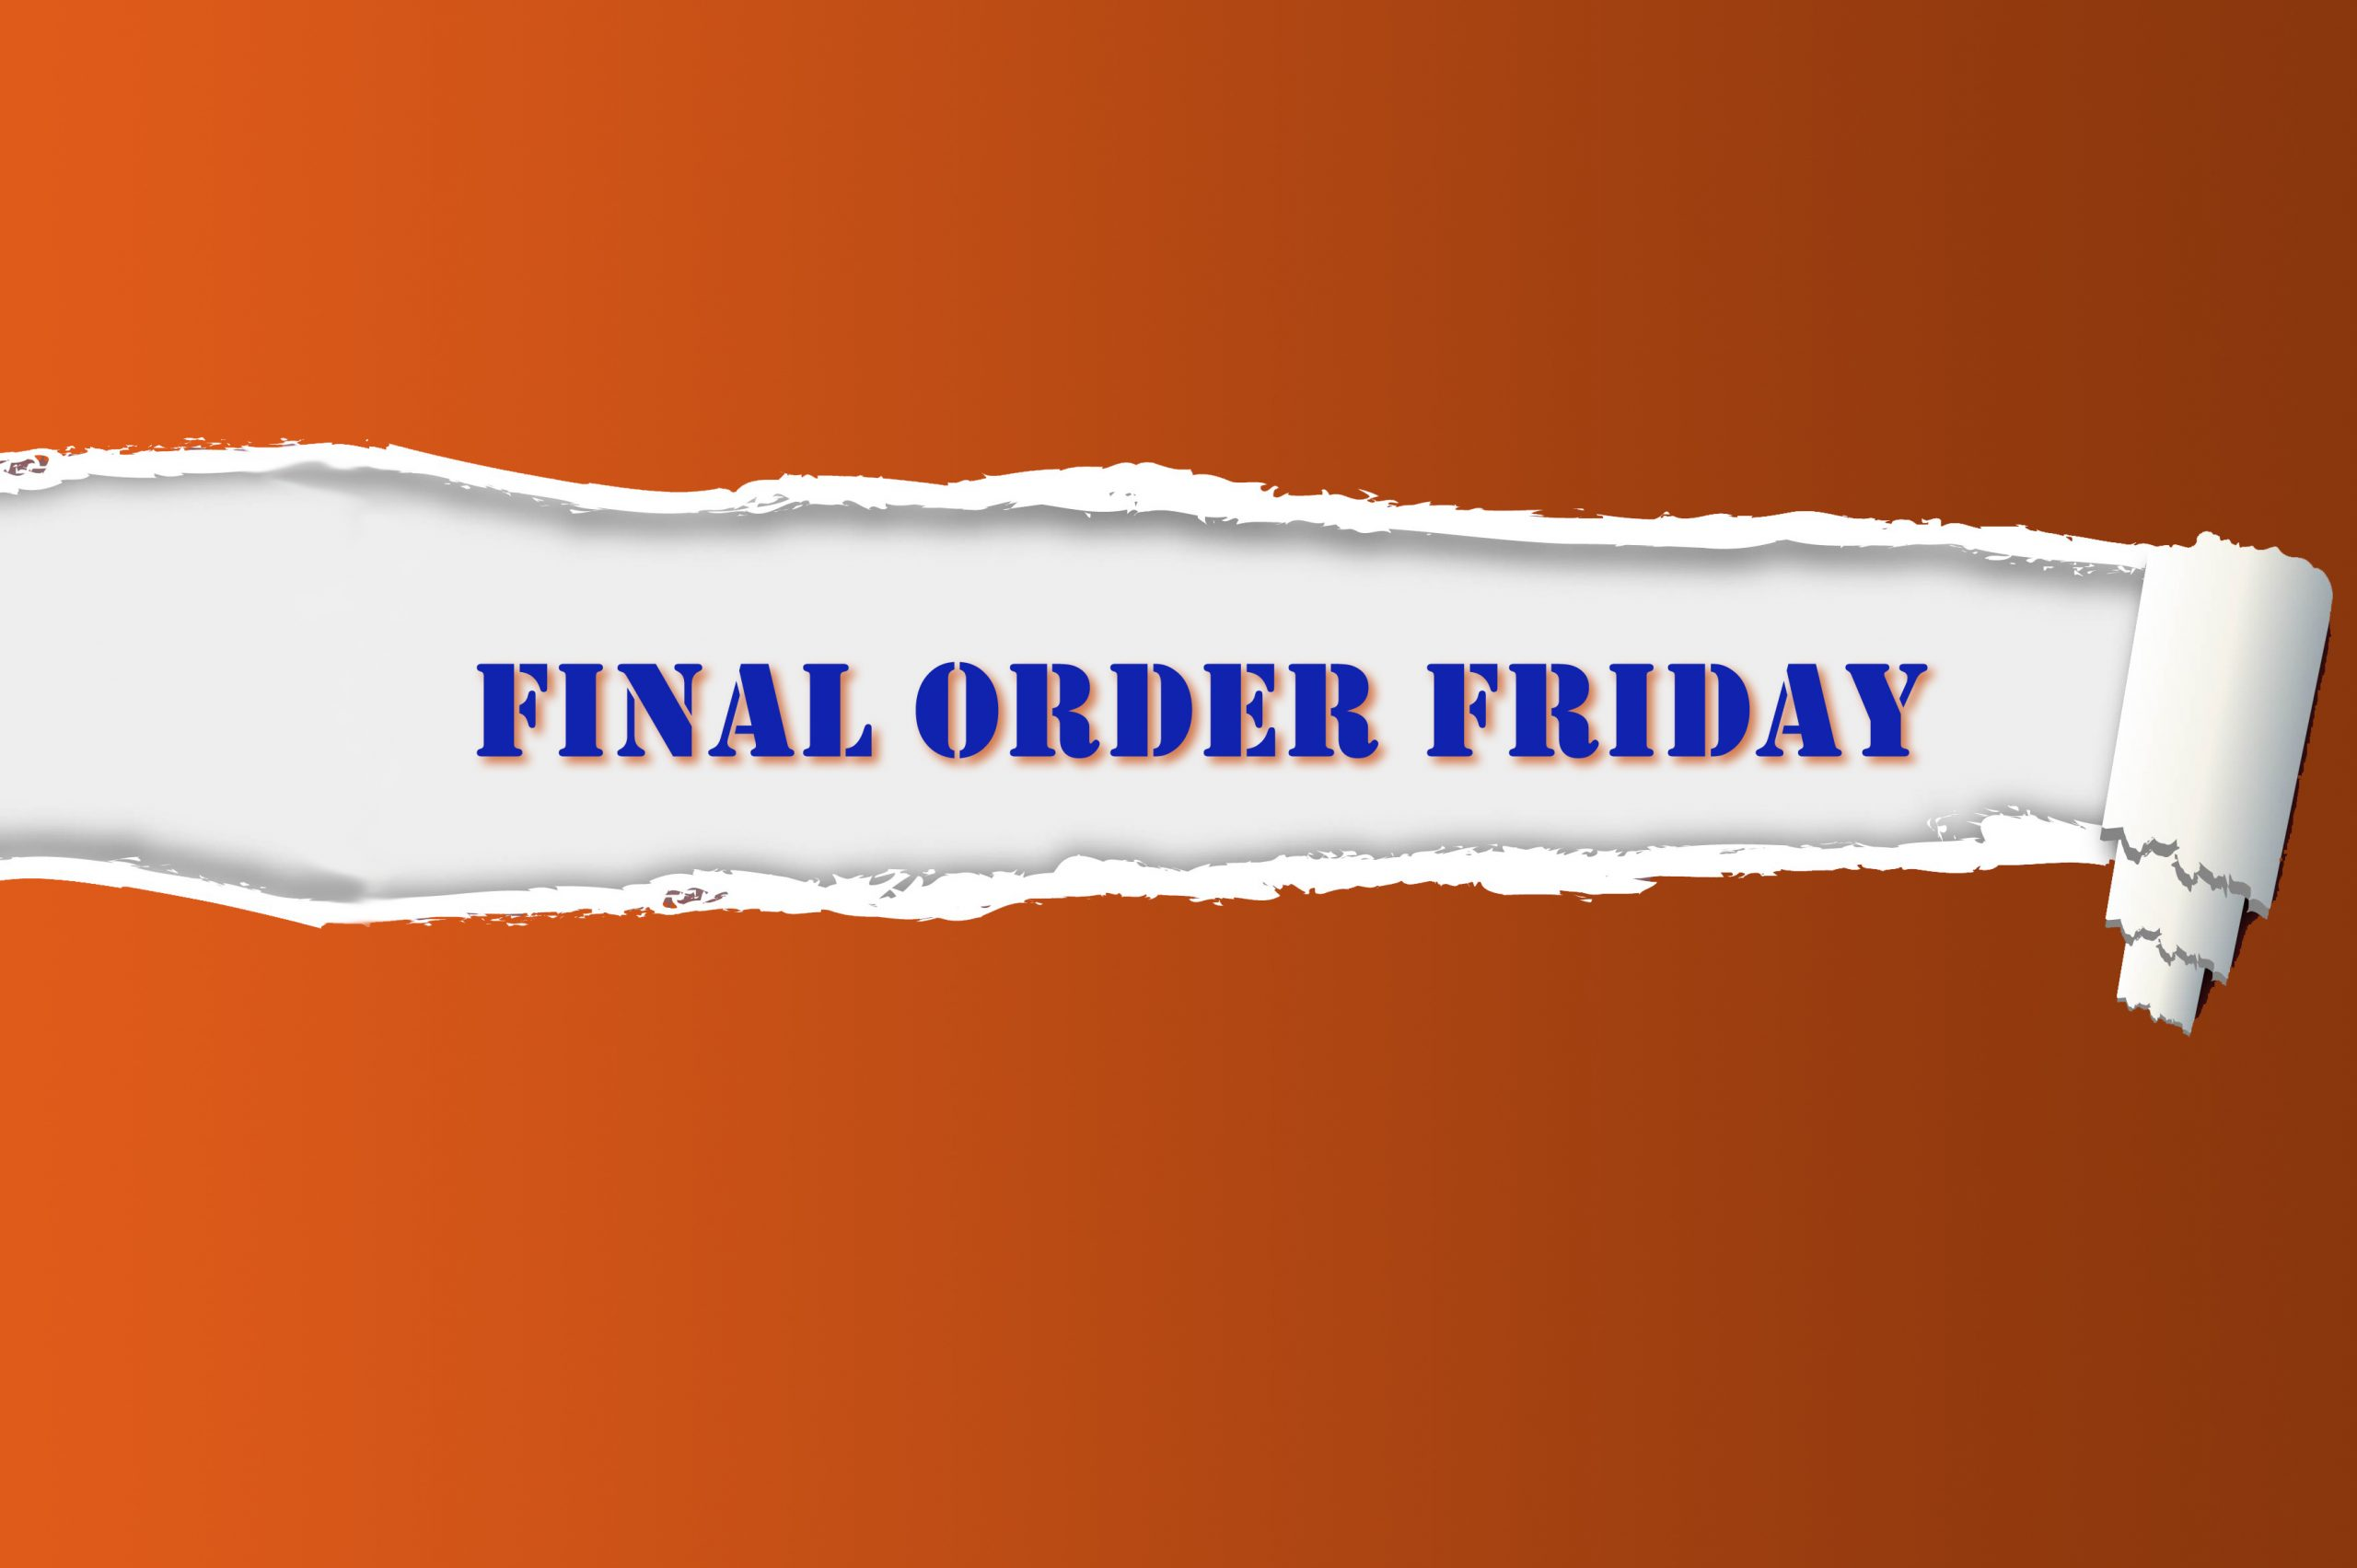 Final Order Friday